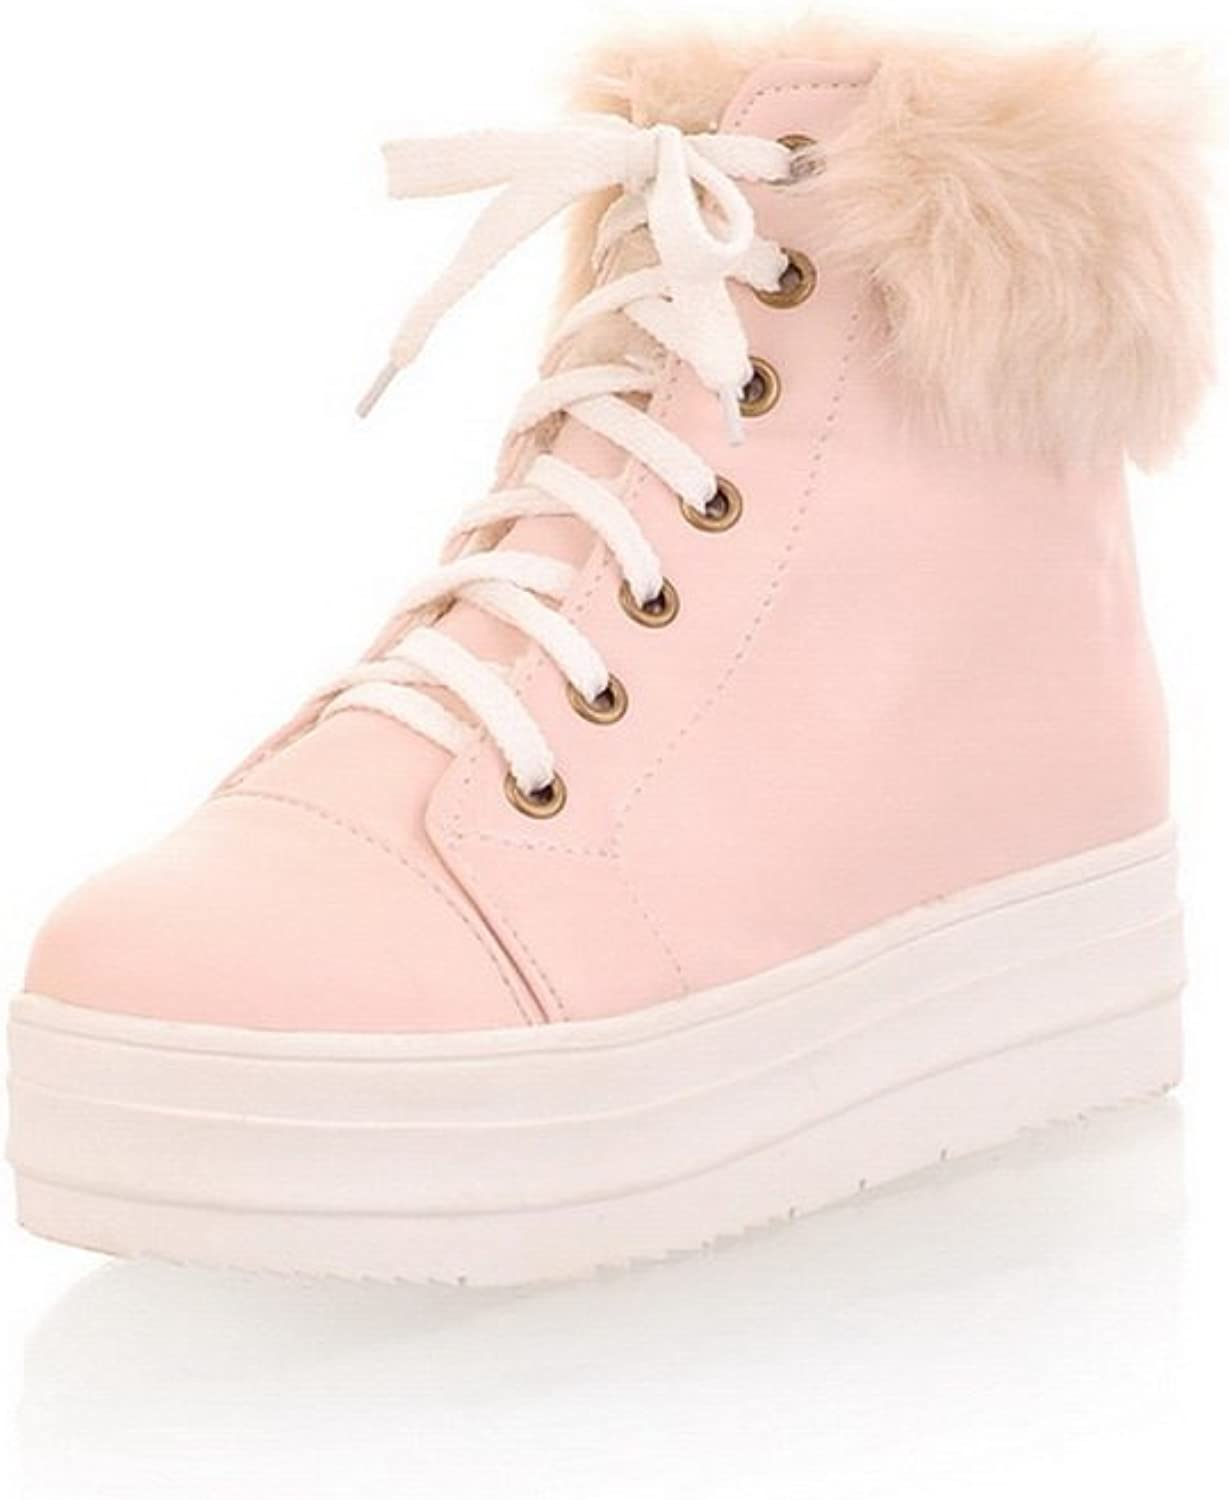 WeiPoot Women's PU Closed Round Toe Low-Top Low-Heels Boots, Pink, 39